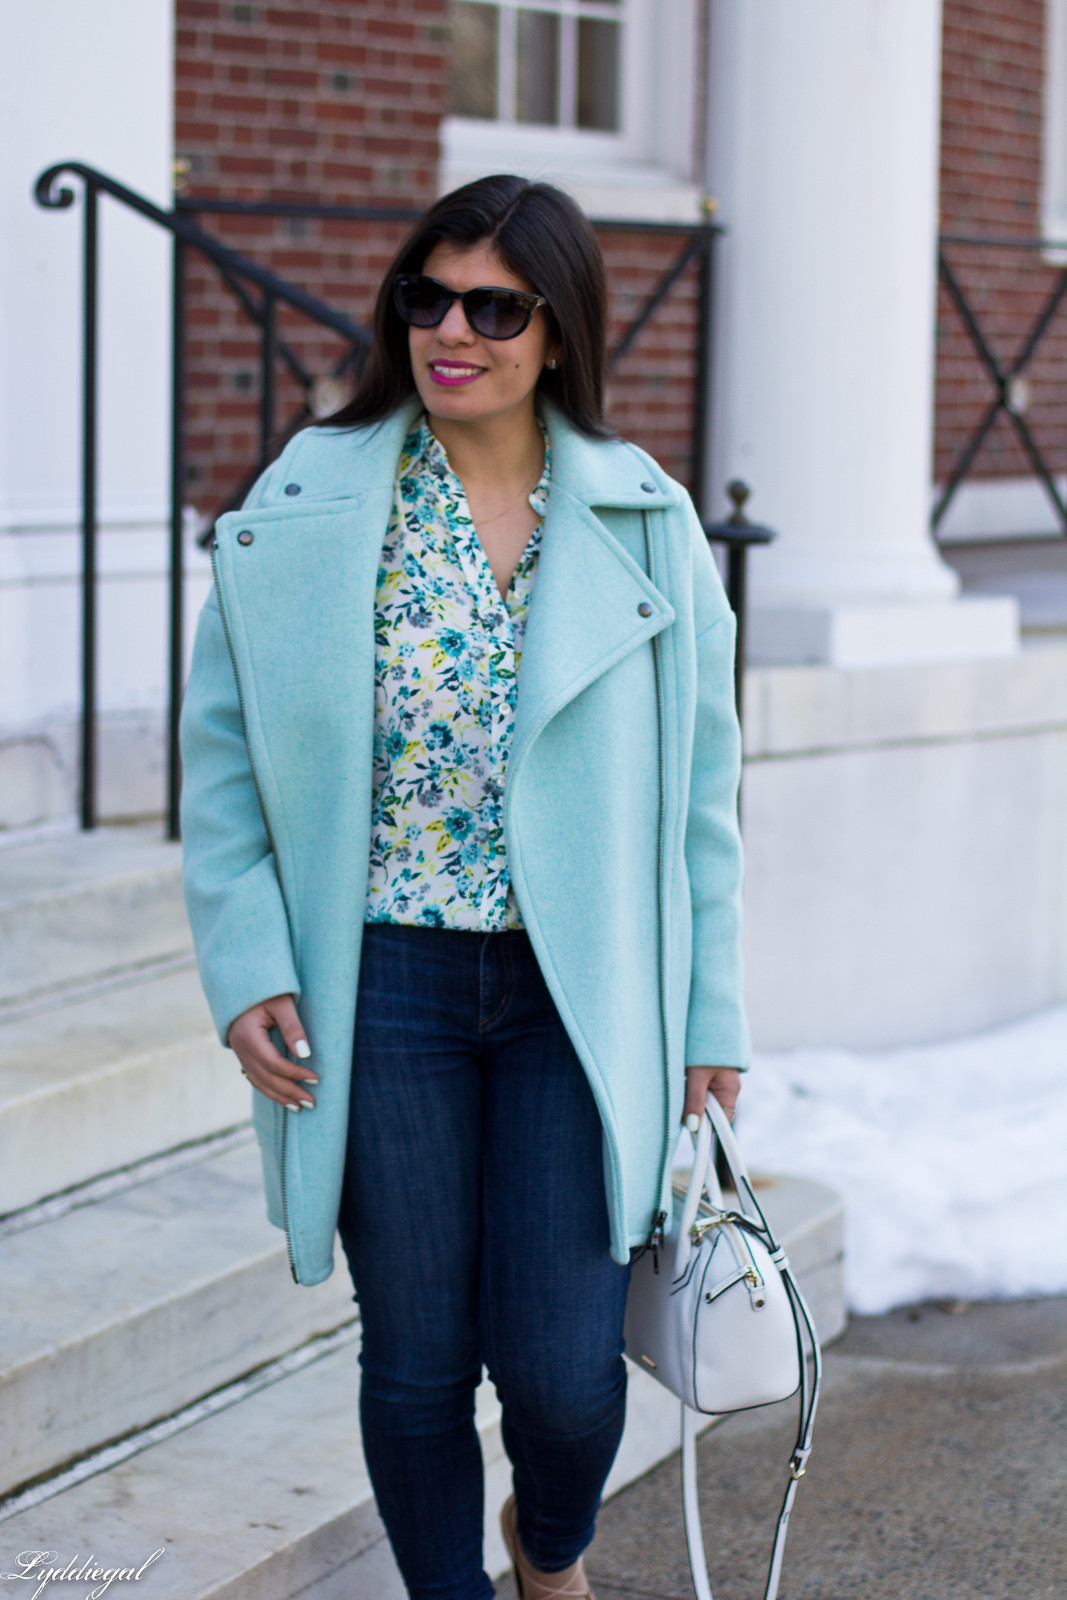 mint green cocoon coat, floral blouse, lace up flats, spring outfit-5.jpg